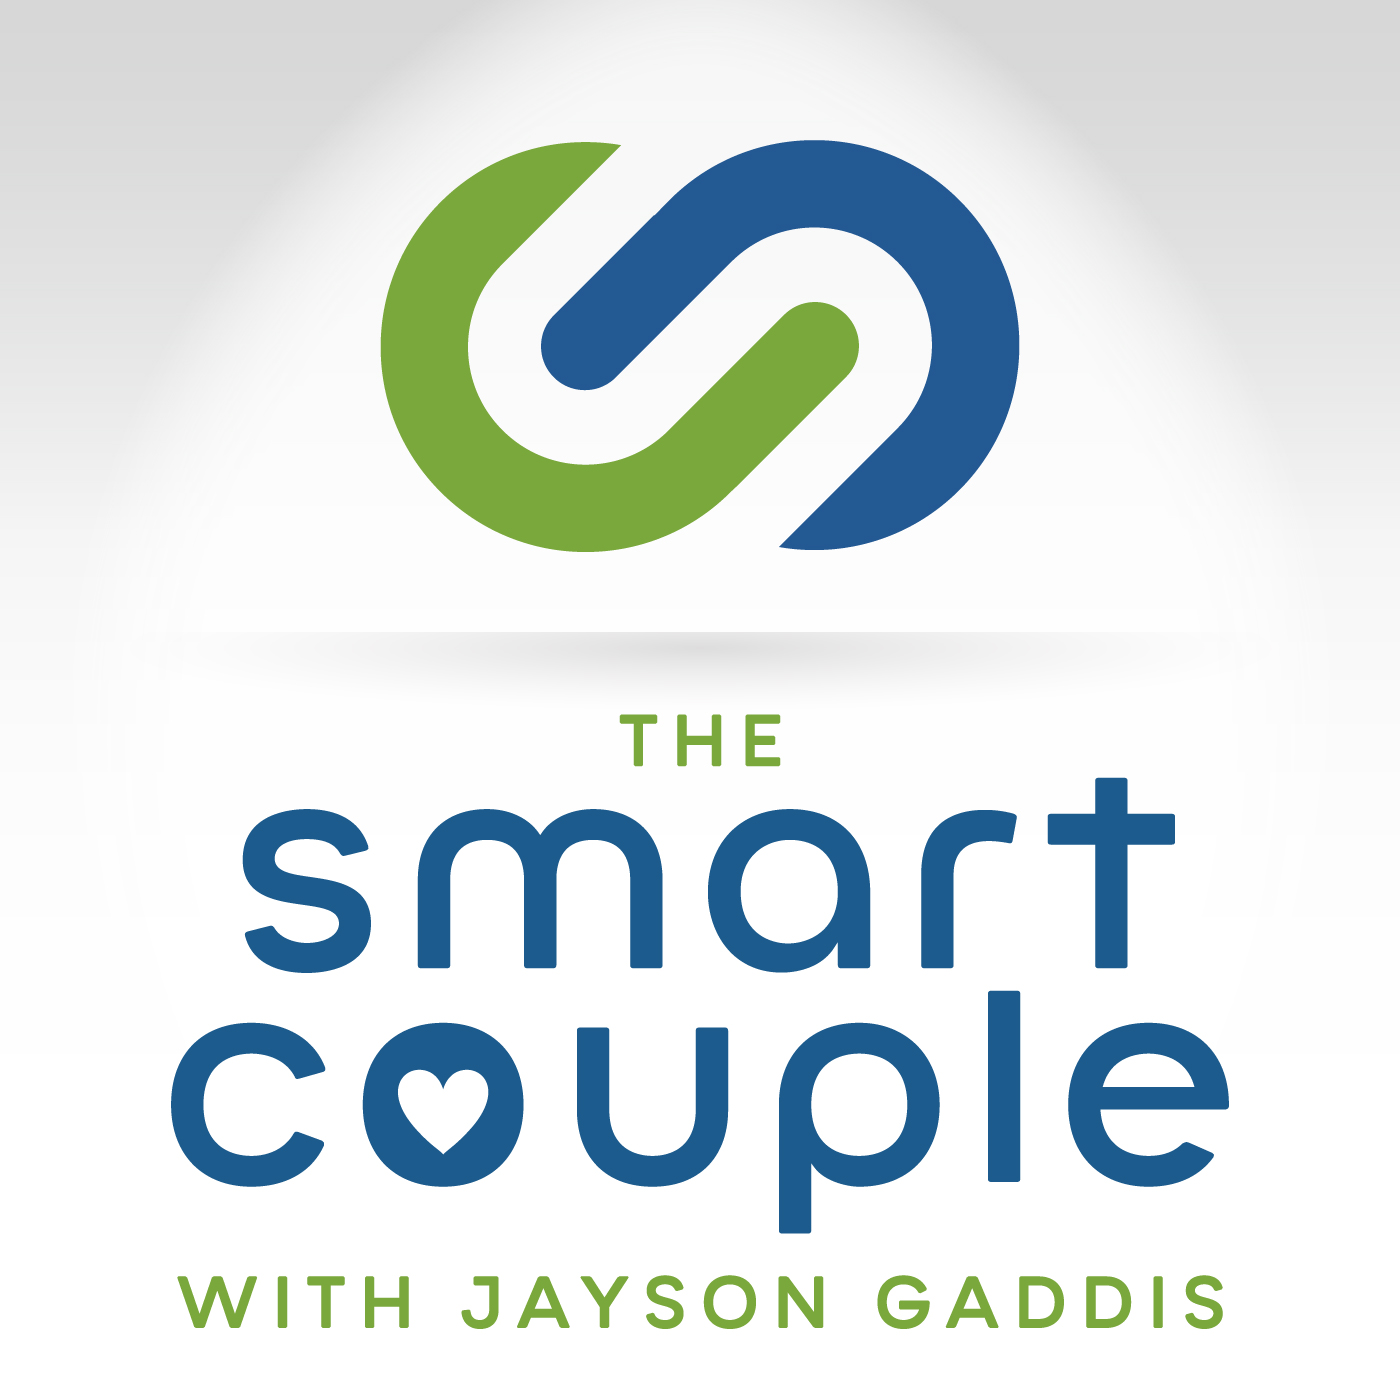 The Relationship School Podcast - Setting Boundaries With Dysfunctional Family Members - Terri Cole - Smart Couple Podcast #219